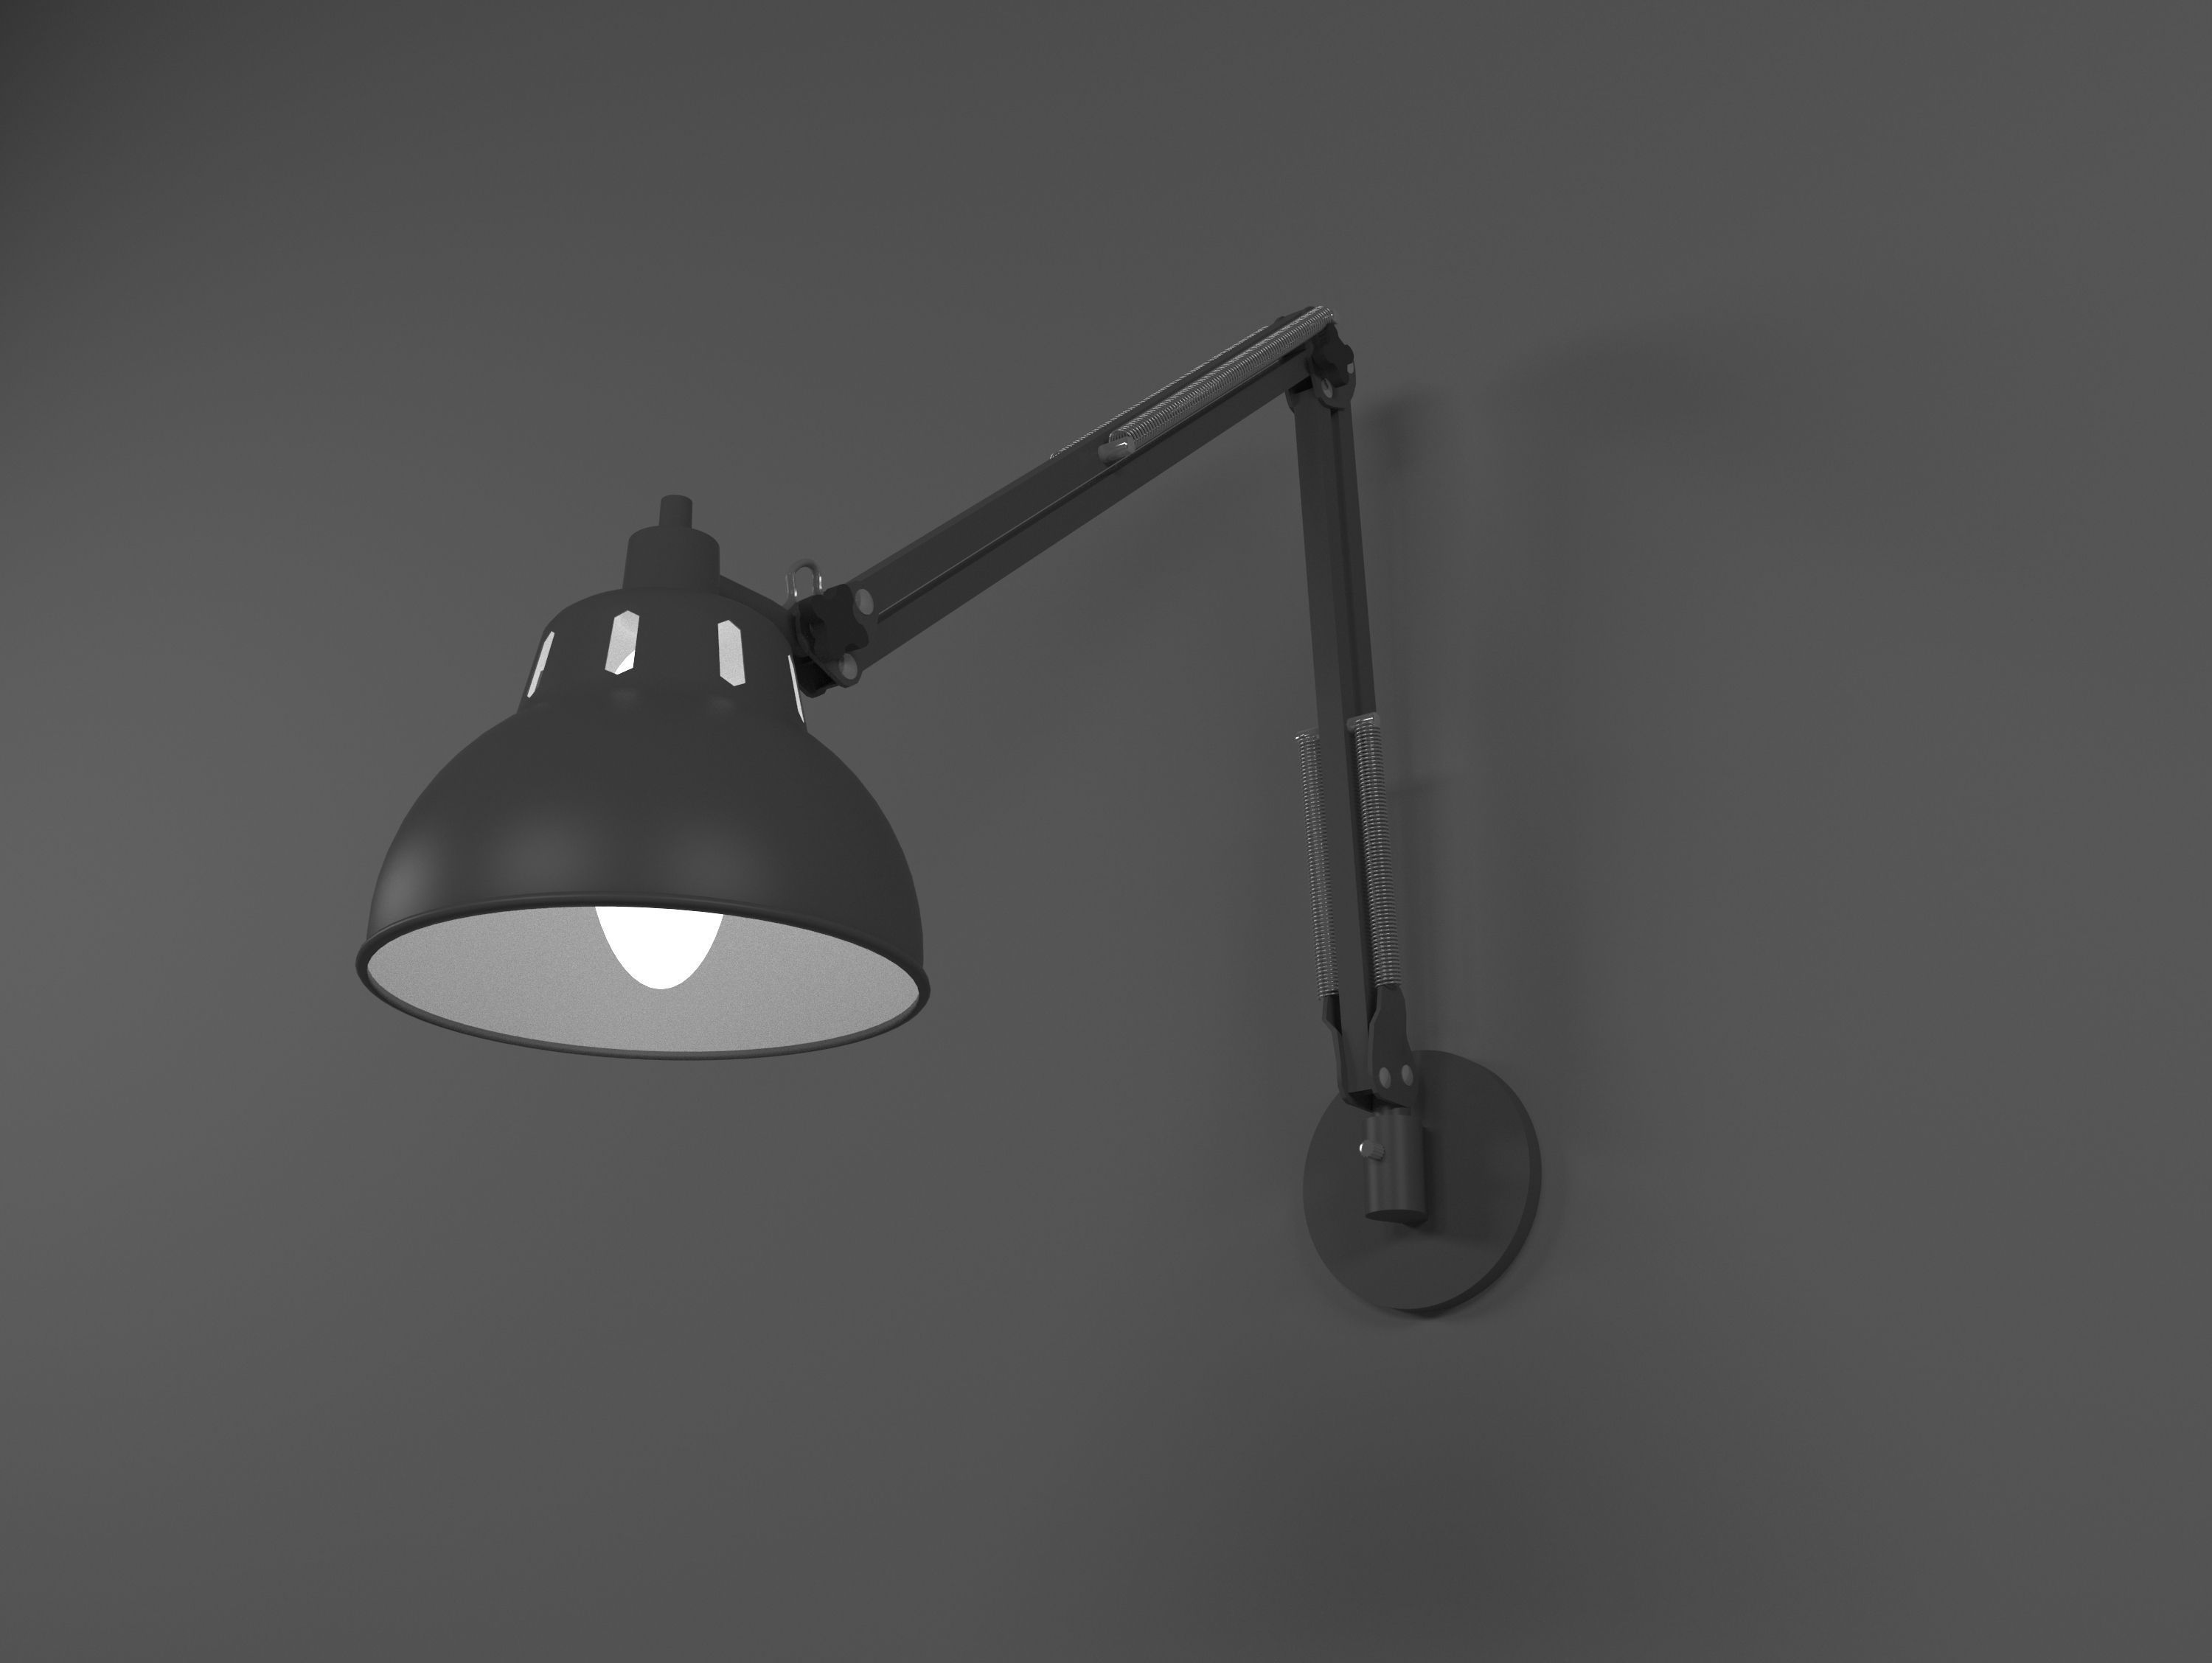 wall mounted office. Wall Mounted Office Lamp 3d Model Max 1